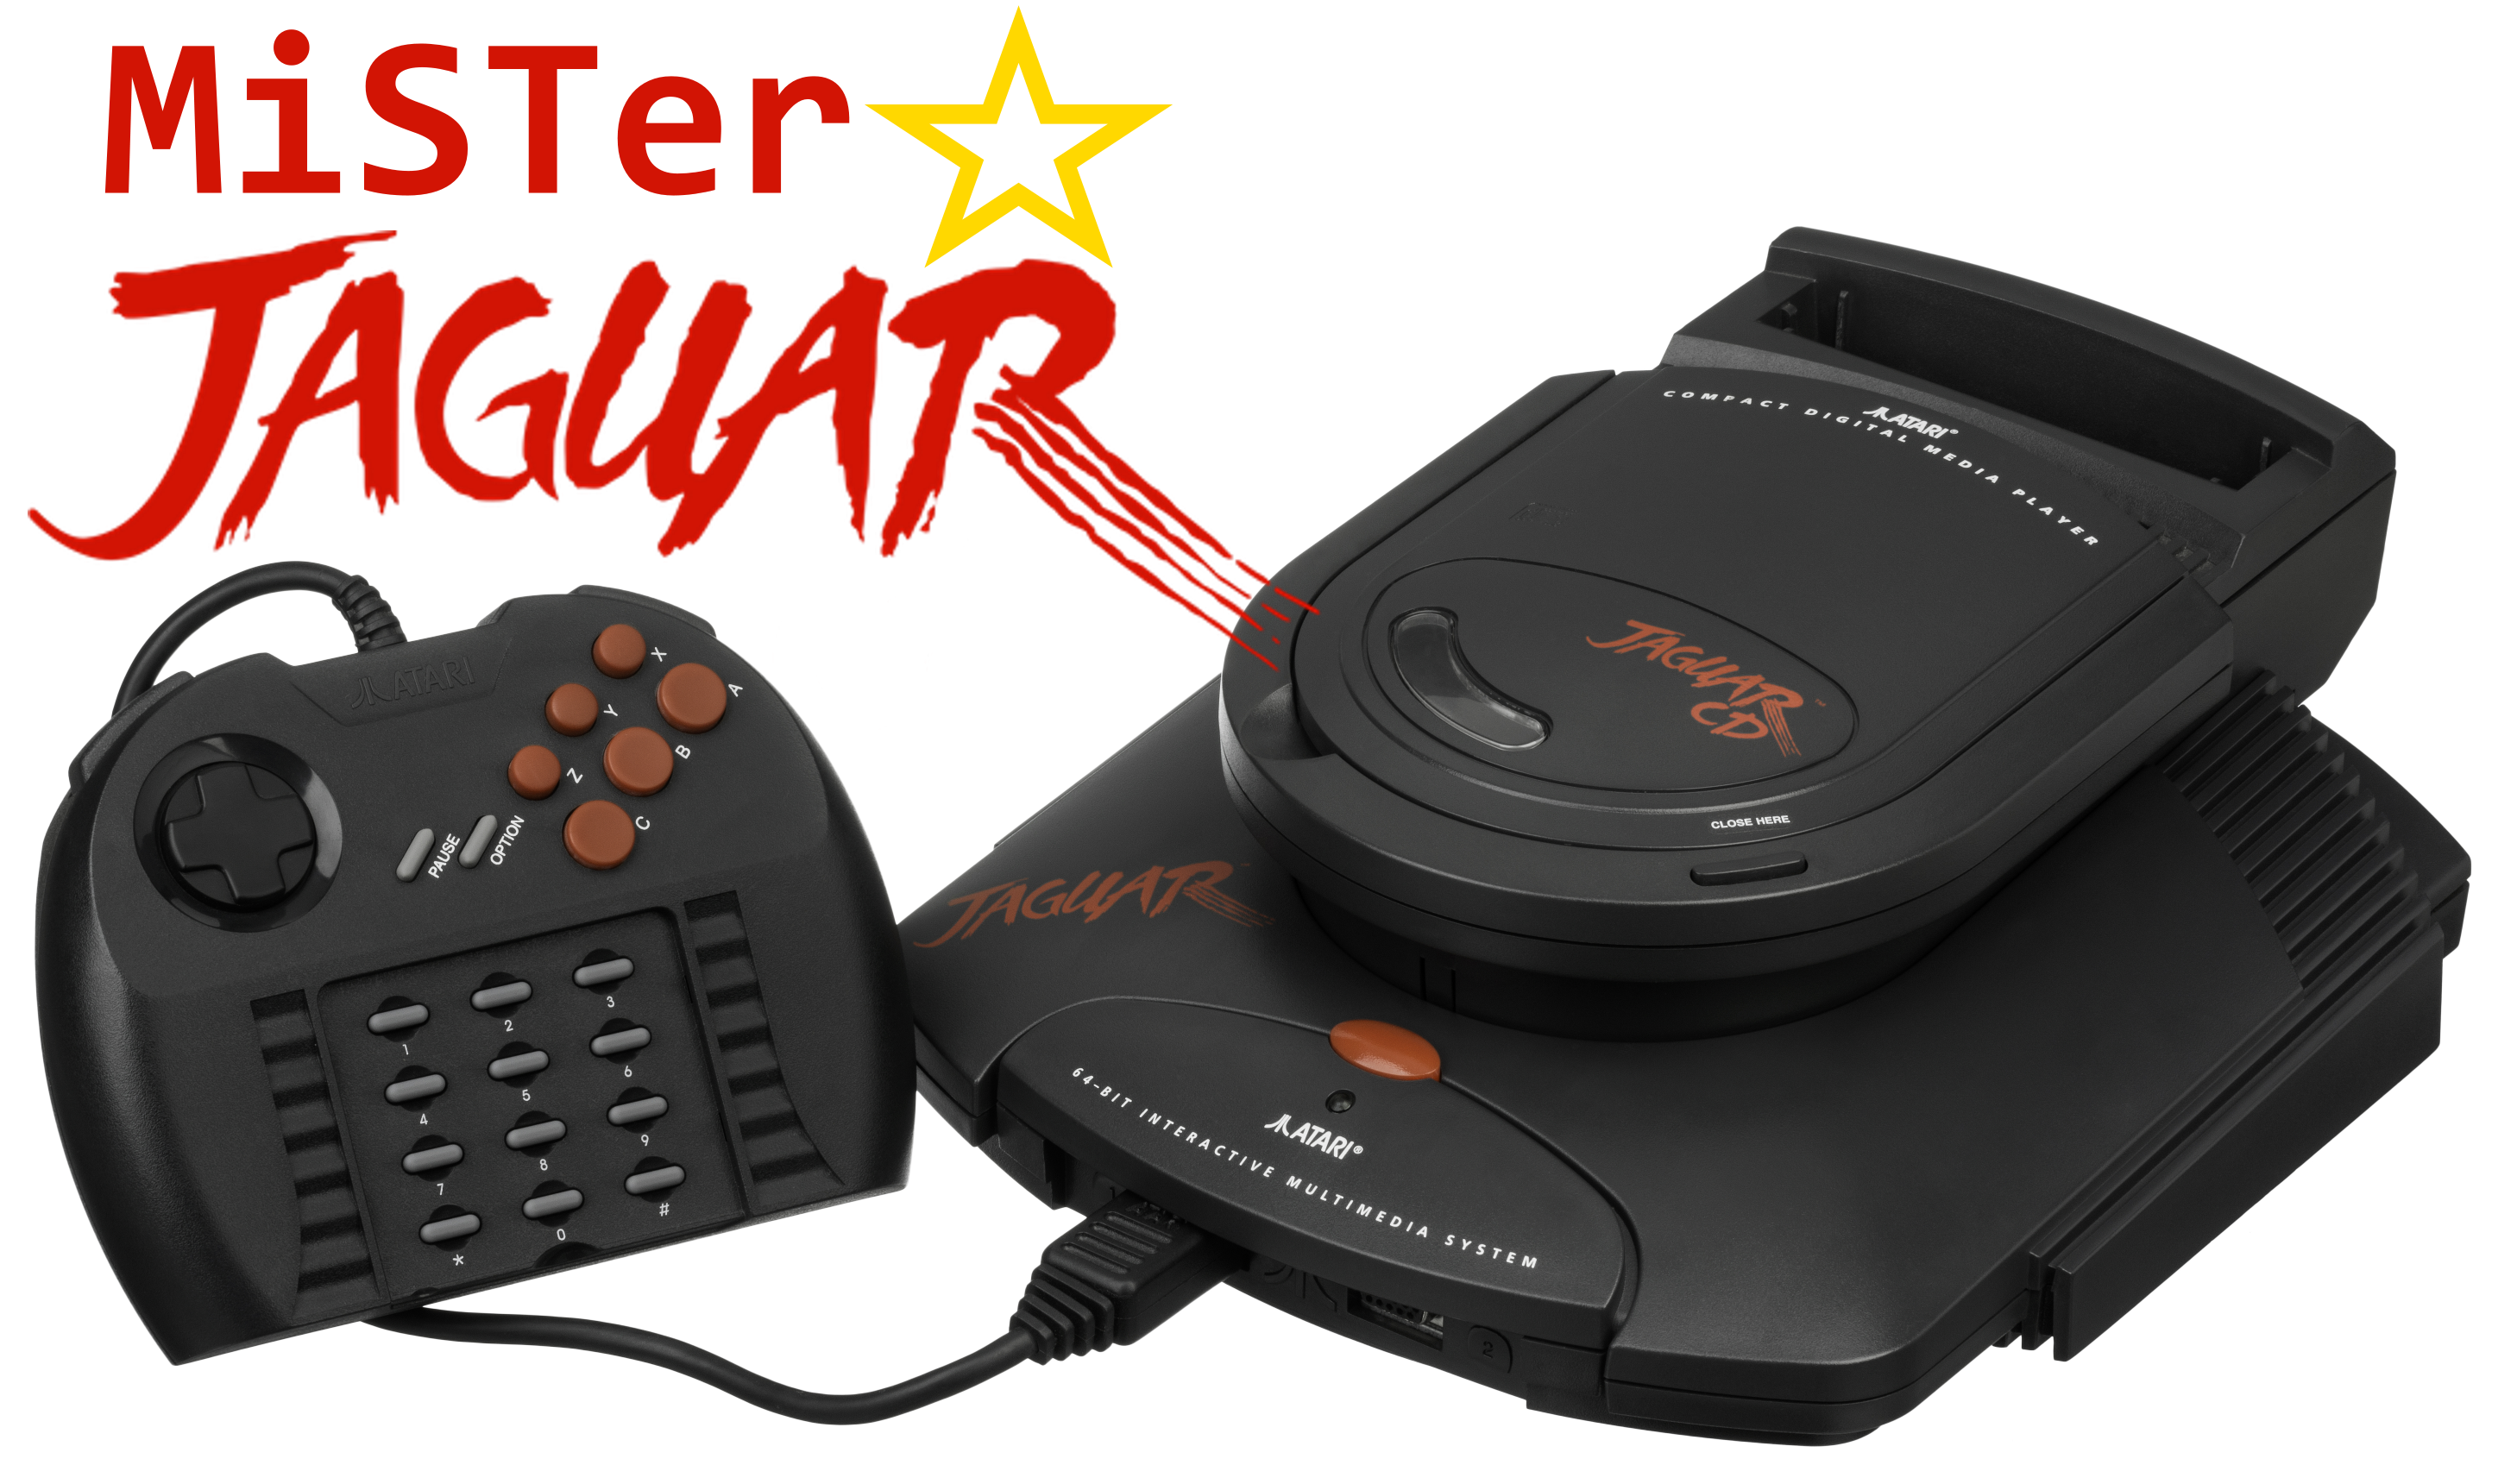 MiSTer Atari Jaguar Core Launched